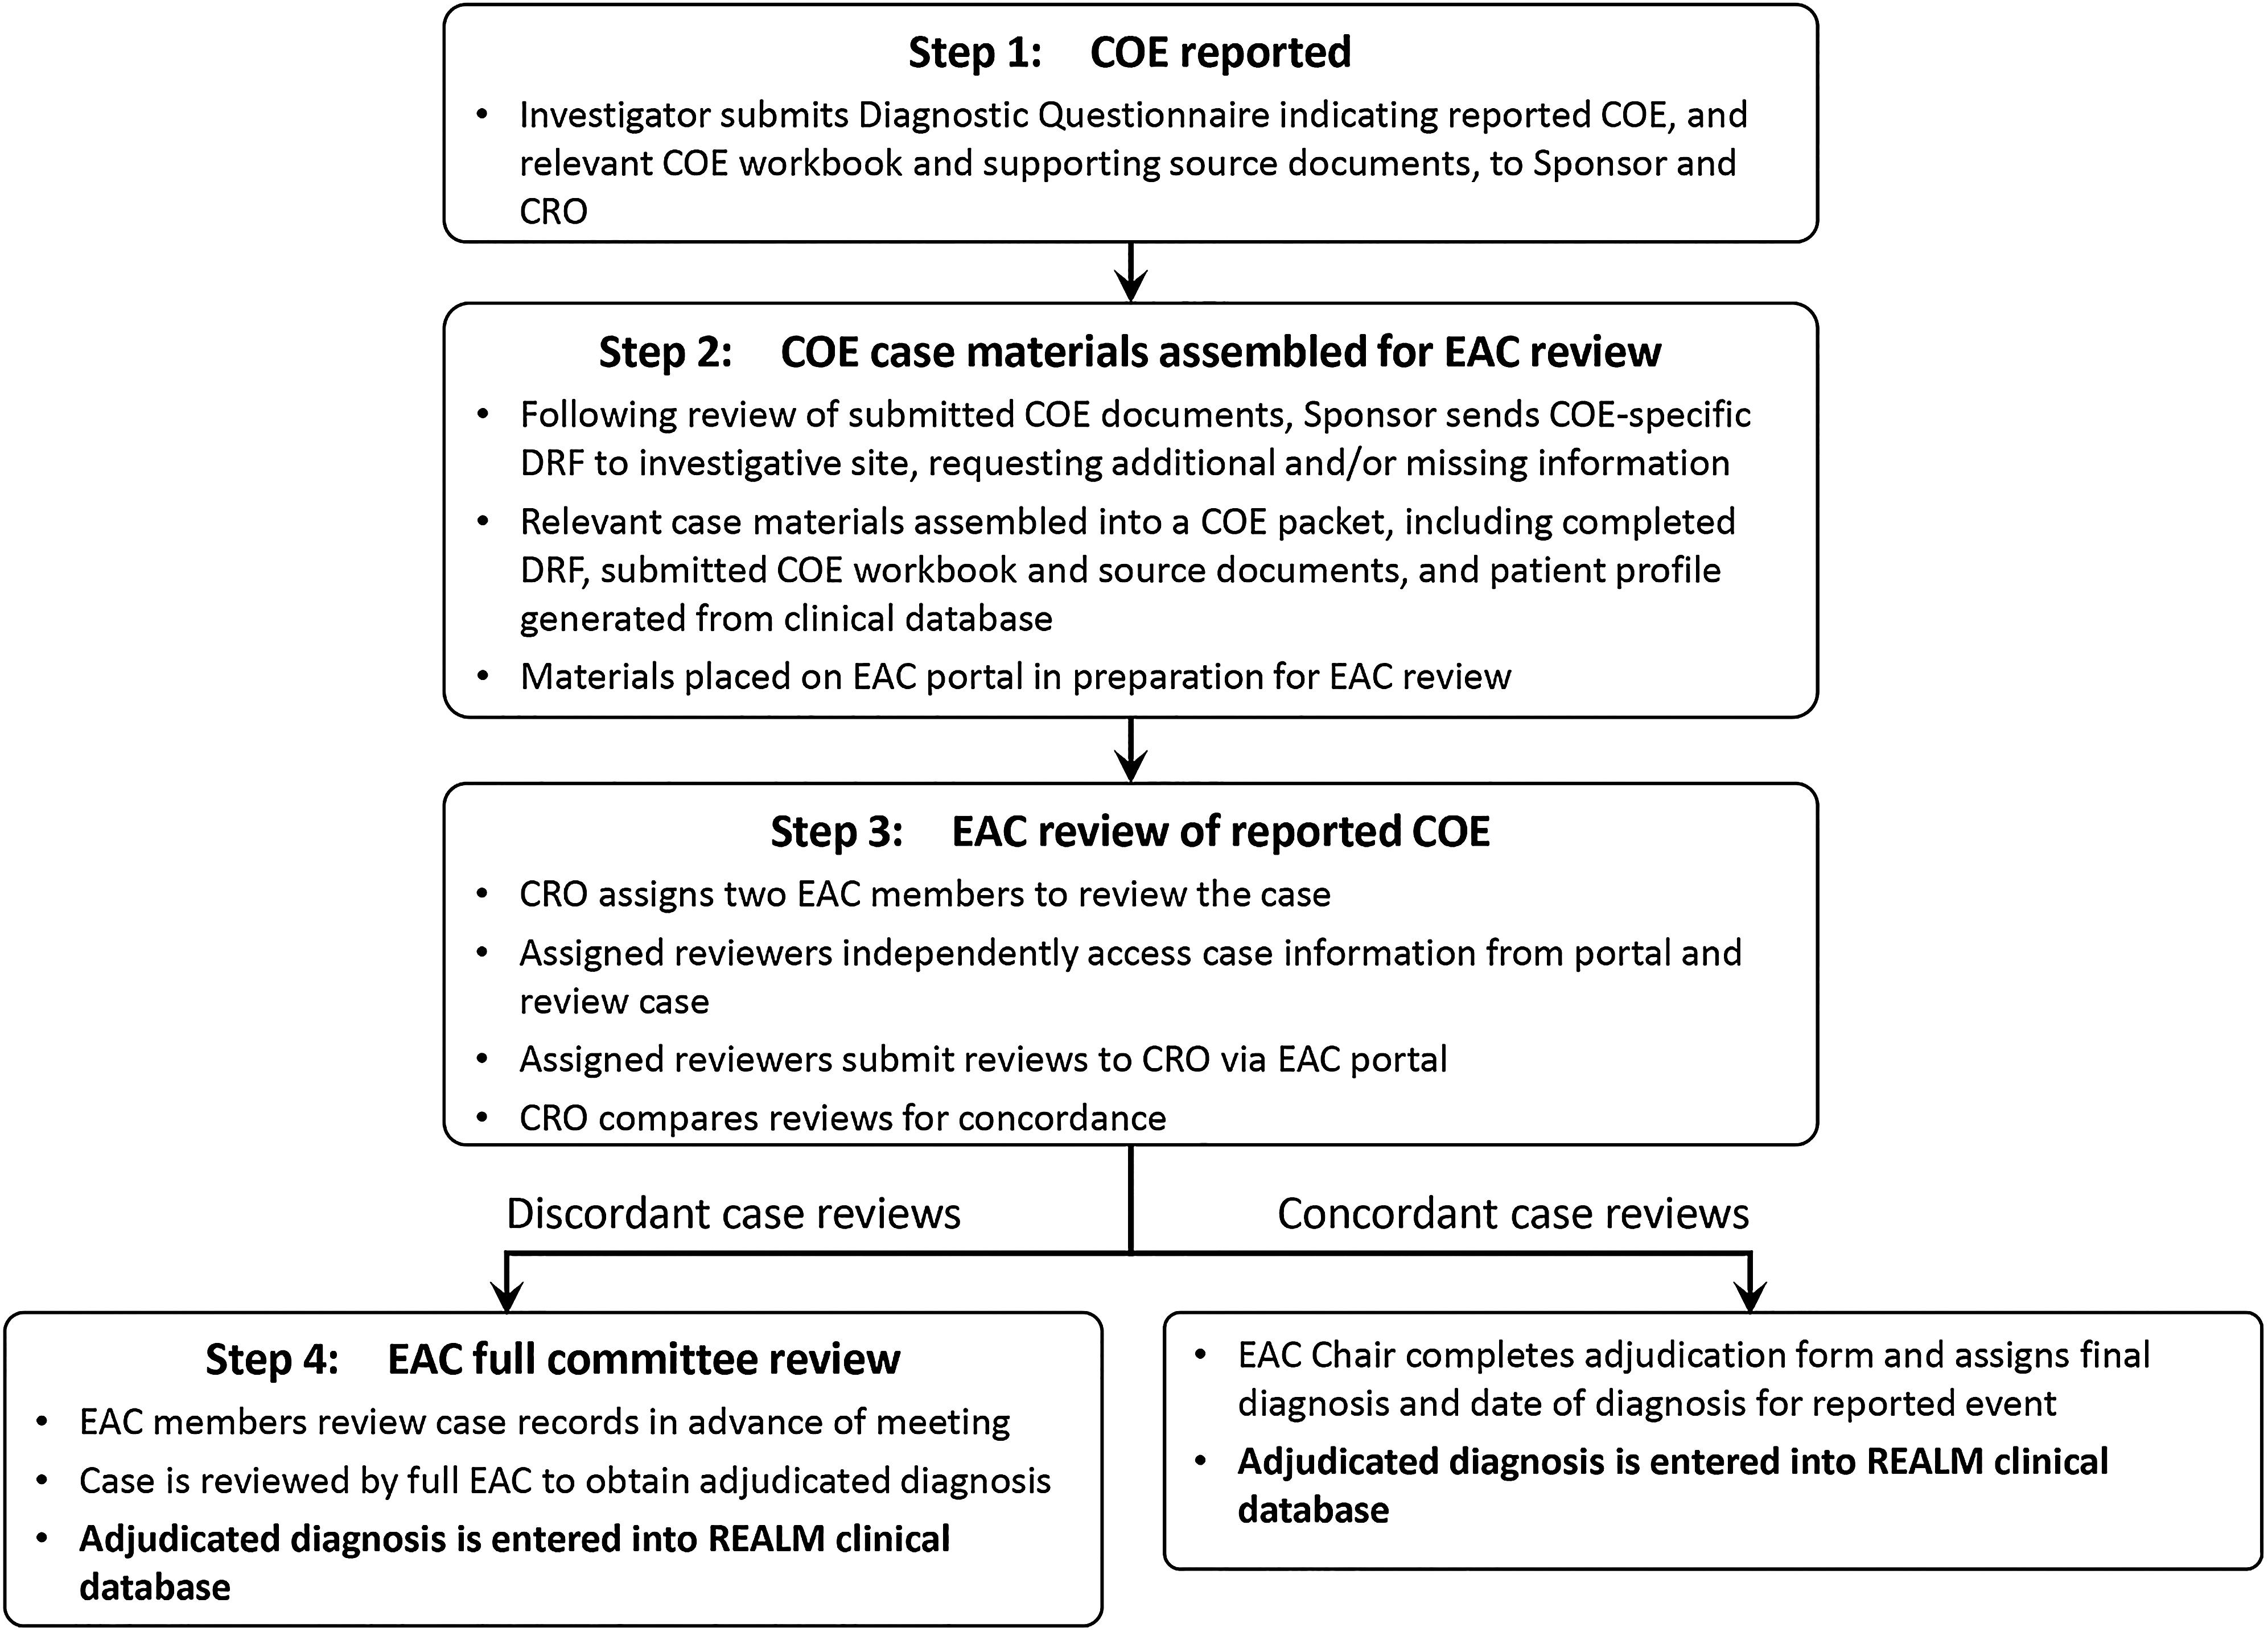 Reporting and processing of COEs for adjudicated diagnosis. Flow chart indicates the standardized procedure developed for data collection and EAC adjudication. In addition, during steps 3 and/or 4, reporting sites were contacted as required to obtain further case information needed for adjudication, as described in step 2.